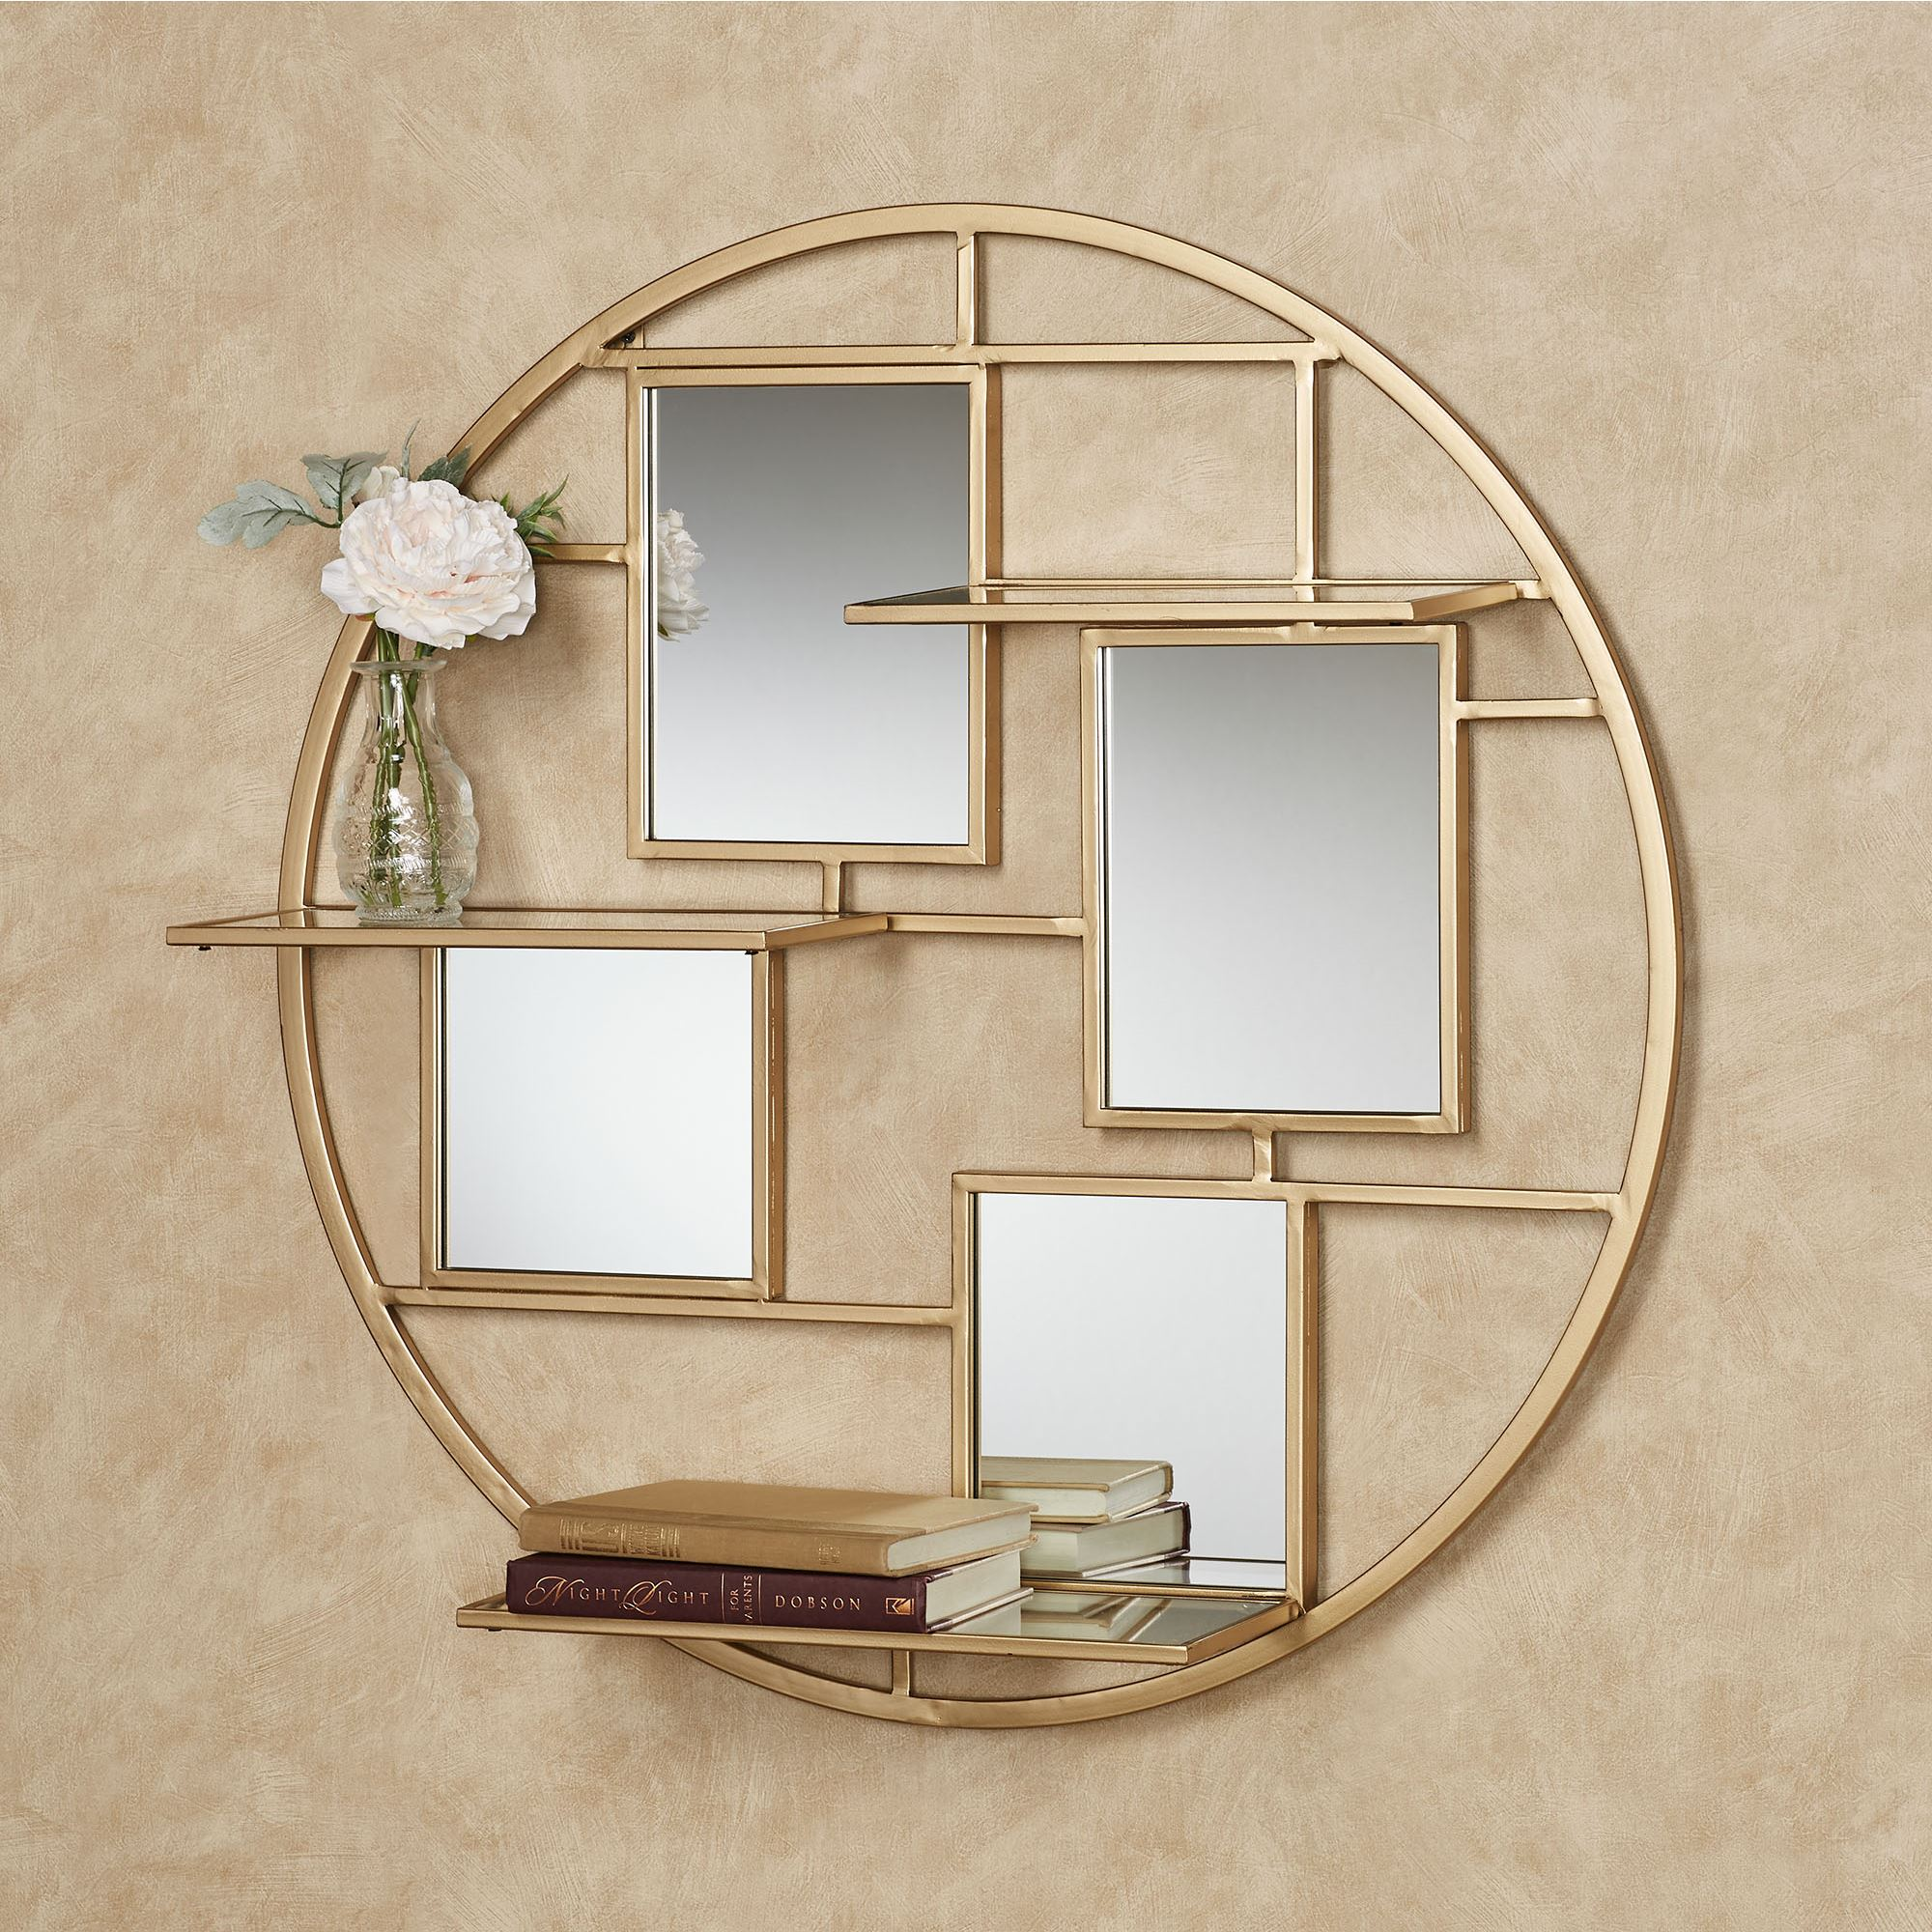 Metal And Mirror Wall Decor from www.touchofclass.com